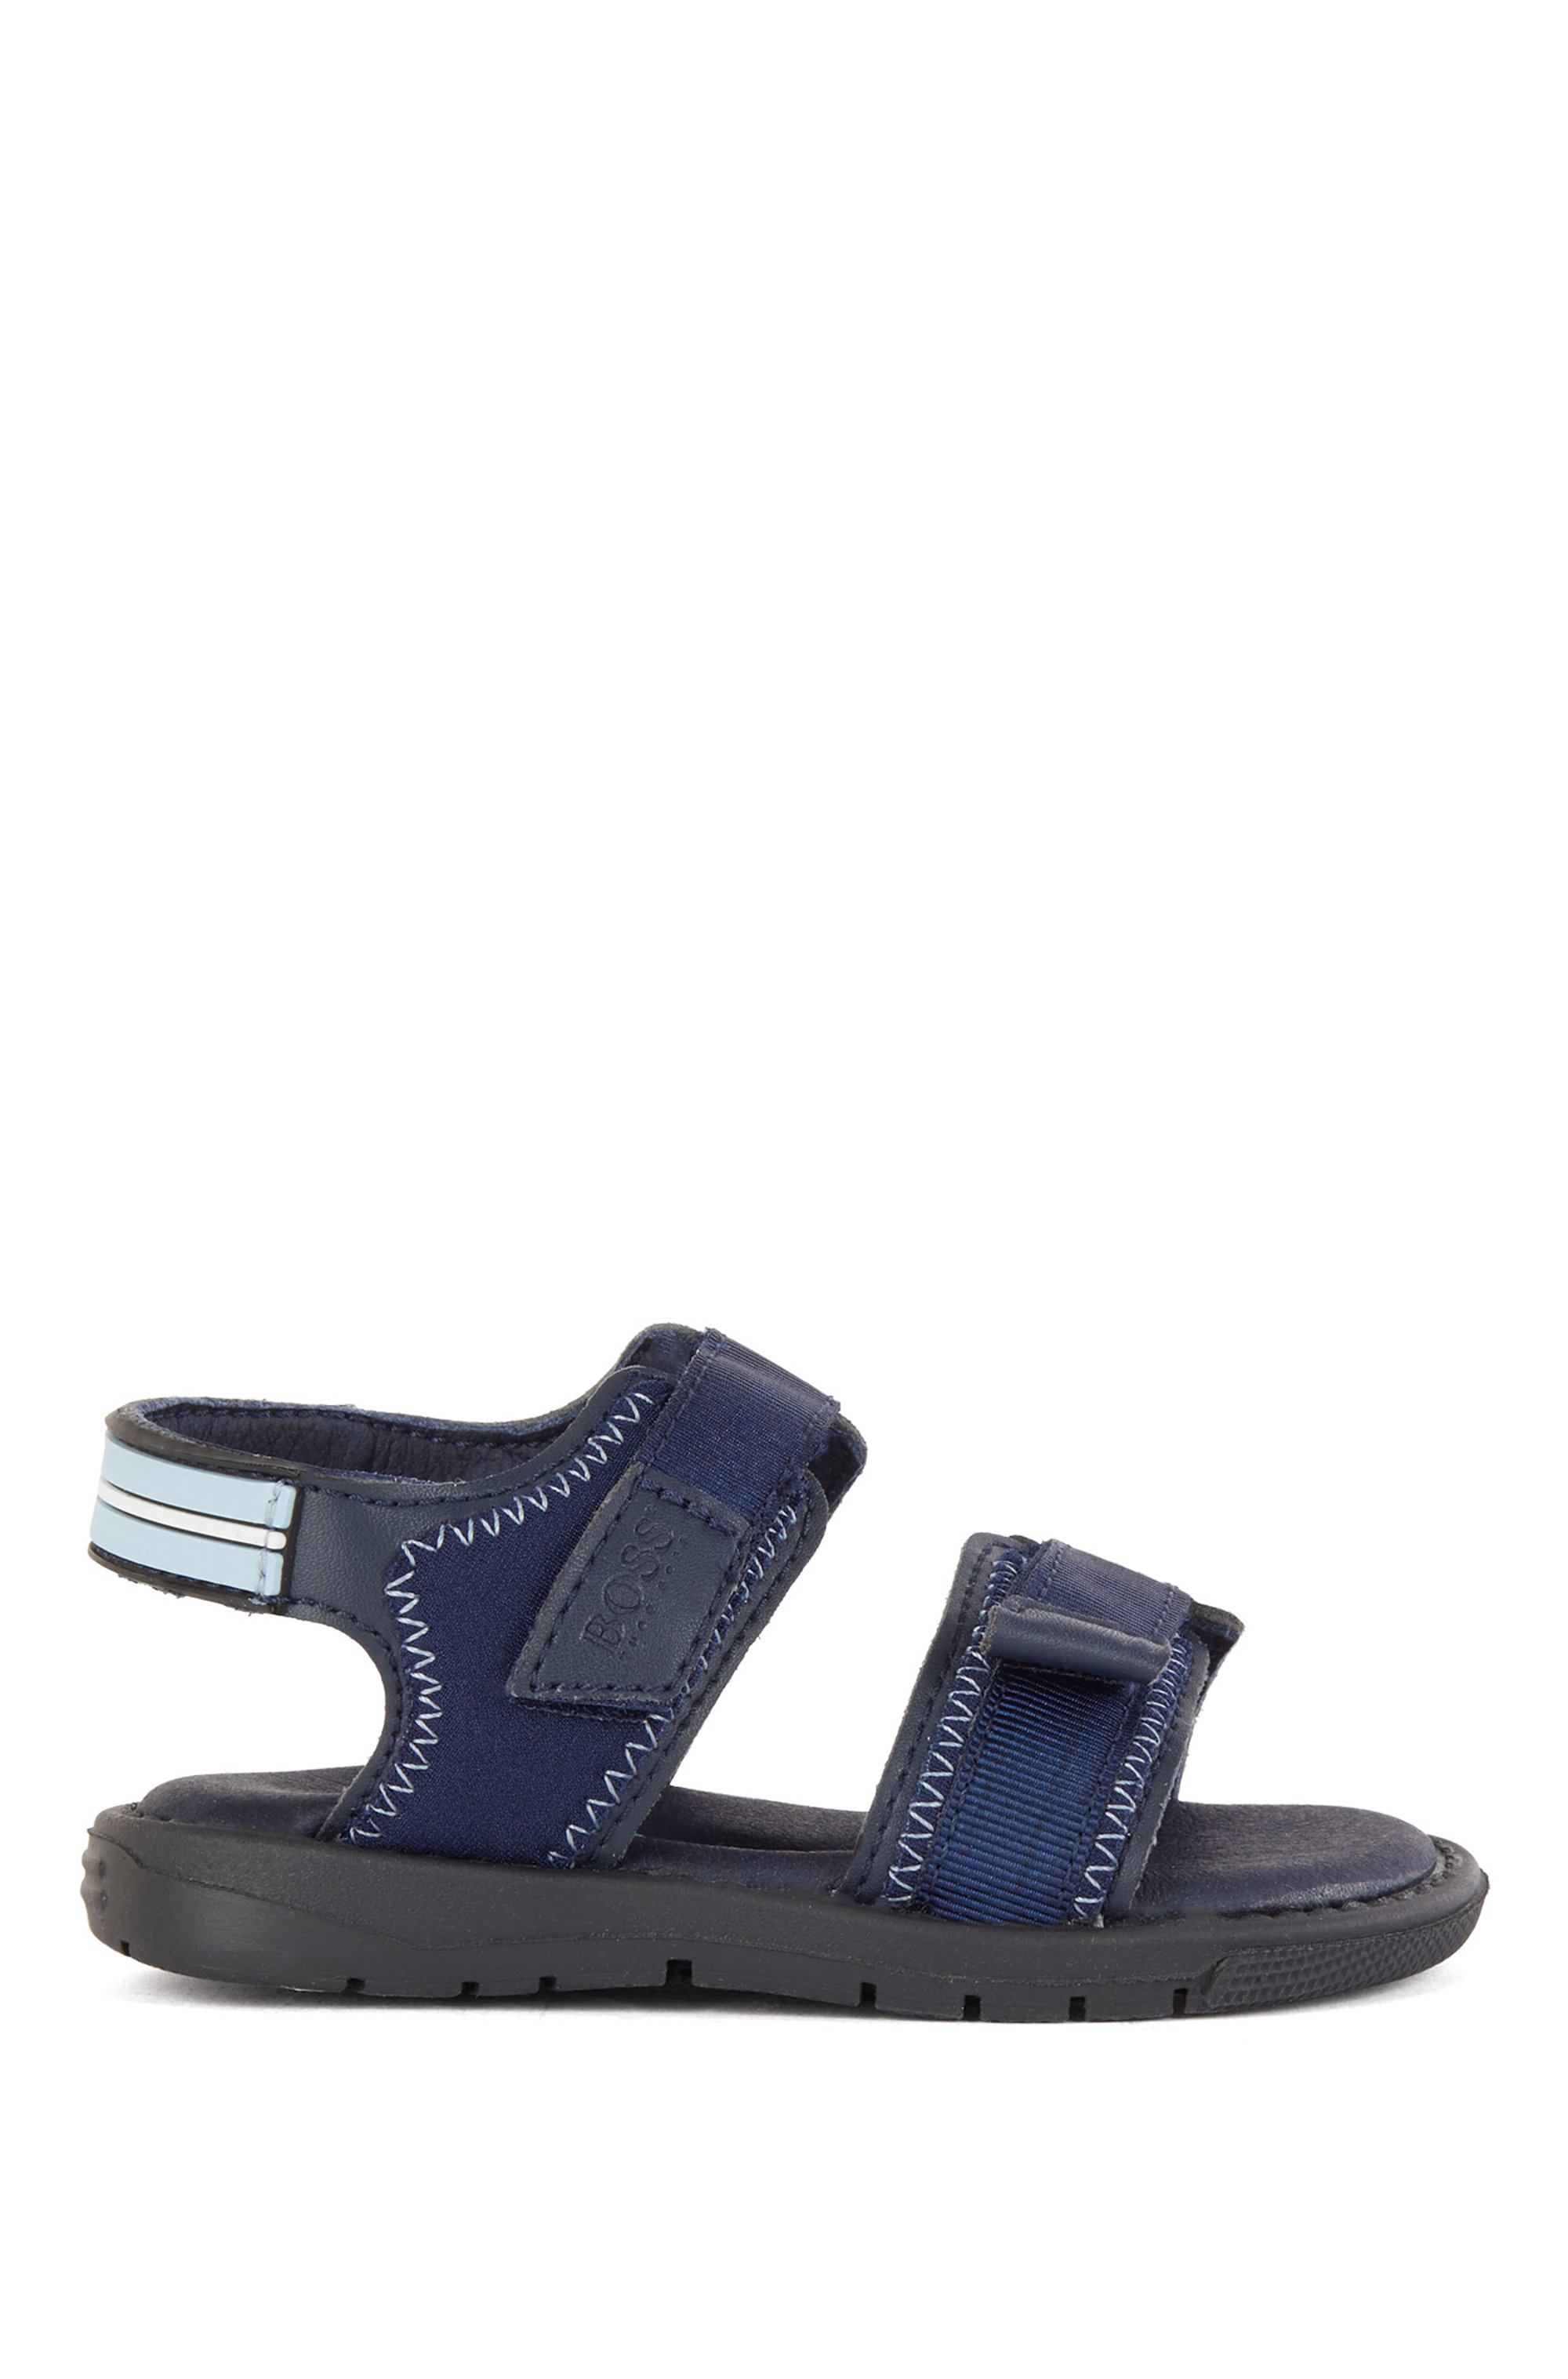 Kids' two-tone sandals with logo strap